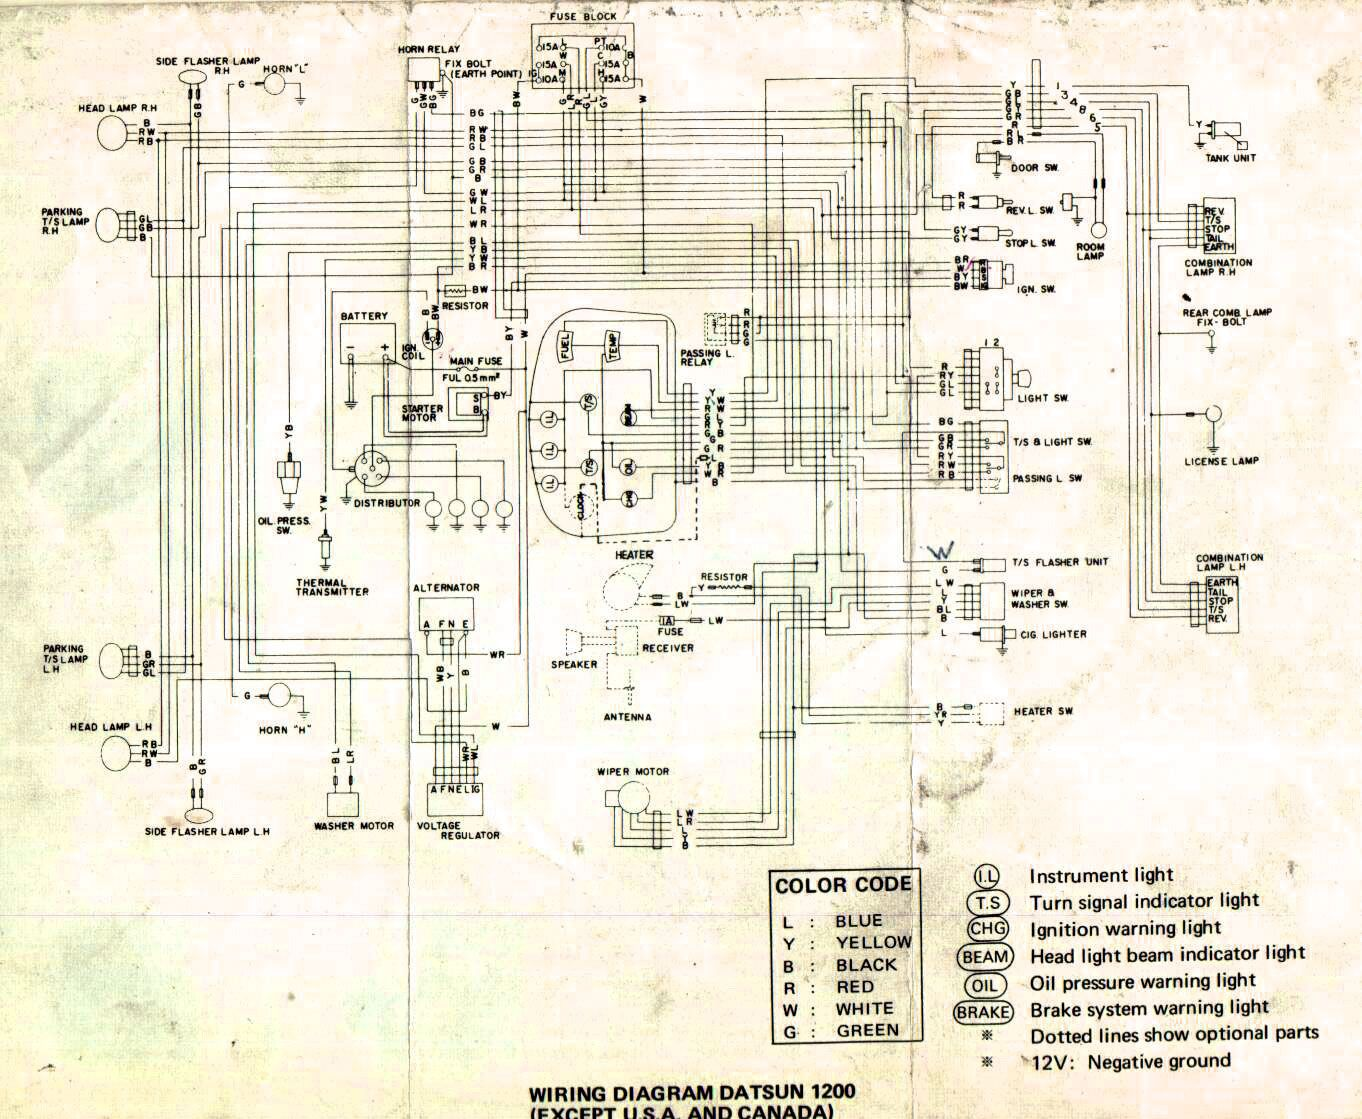 Wiring diagram for nissan 1400 bakkie 8 nissan pinterest wiring diagram for nissan 1400 bakkie 8 swarovskicordoba Image collections